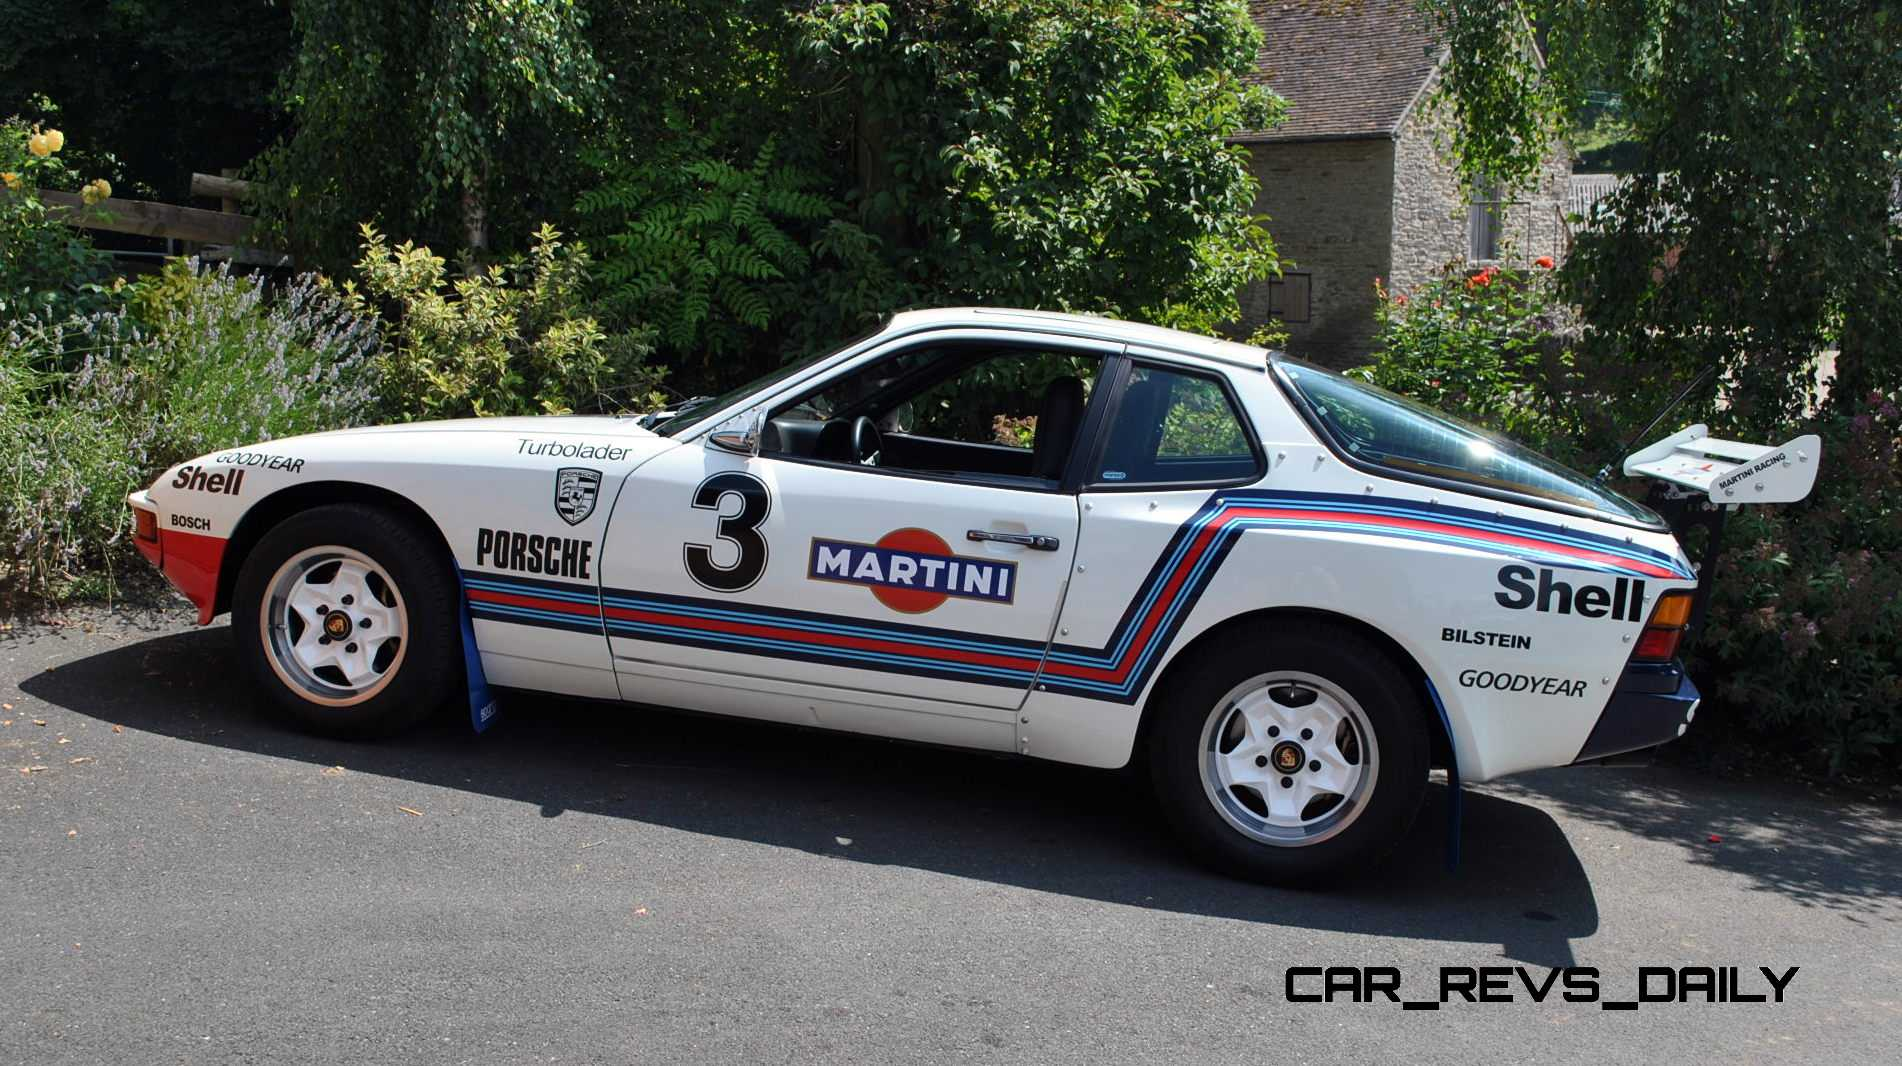 Pristine Porsche 924 Martini Rally Car Up For Grabs In New Uk Sweepstakes